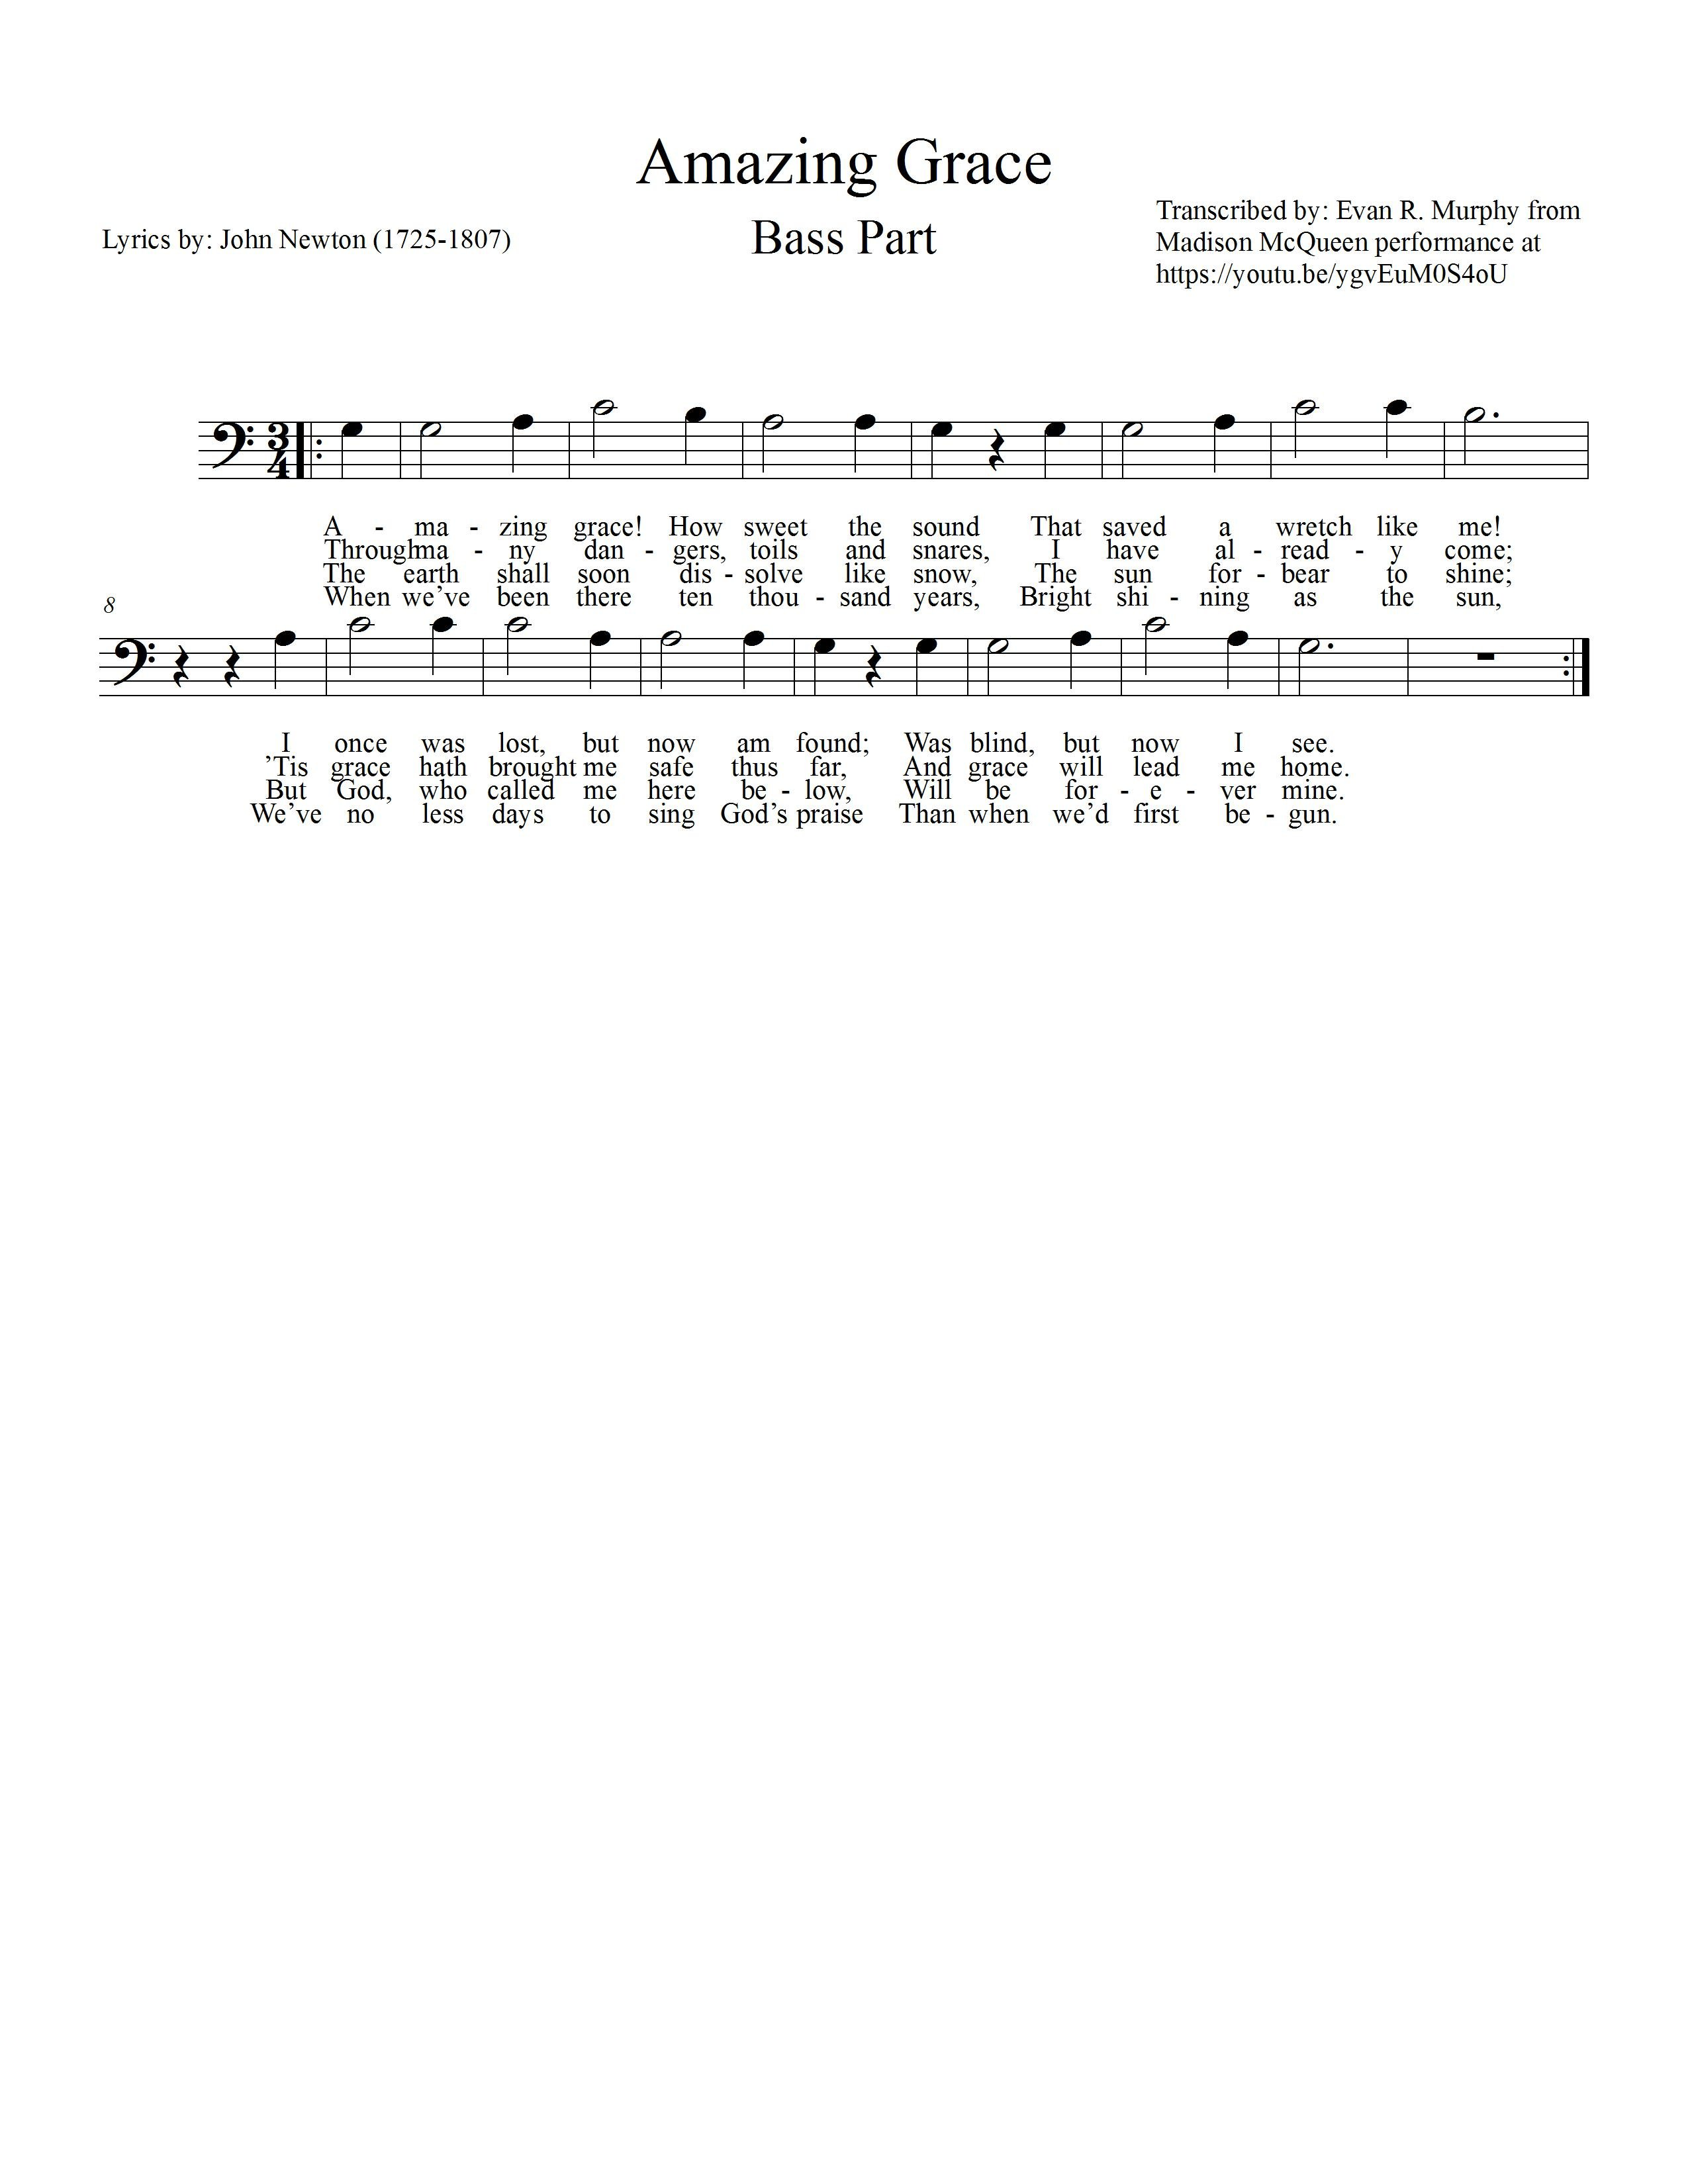 How to start sight reading music in choir musical u an error occurred hexwebz Image collections